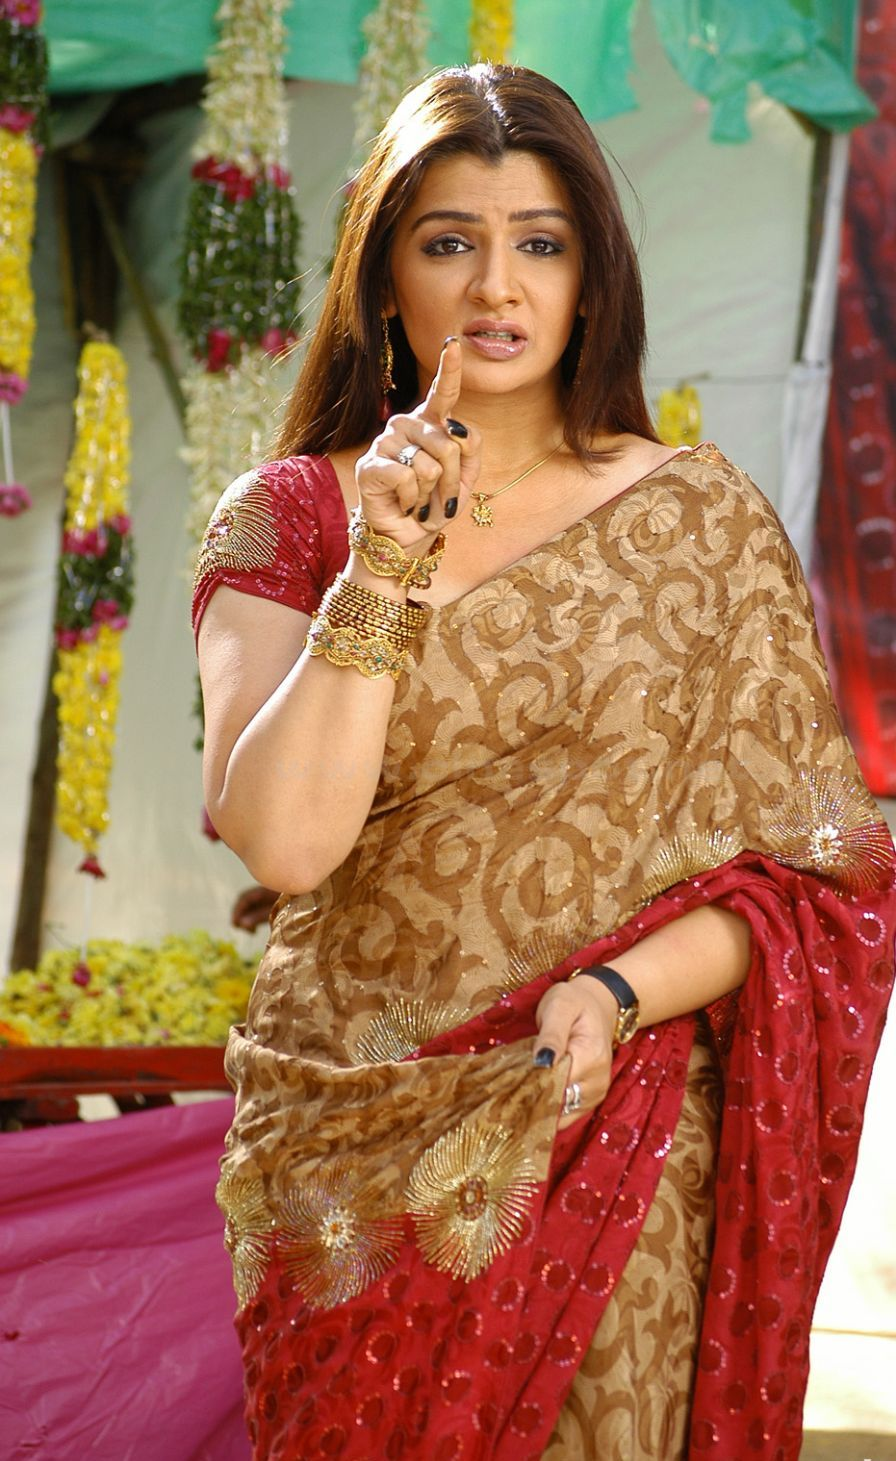 arathi agarwal the south indian super model cum actress in saree